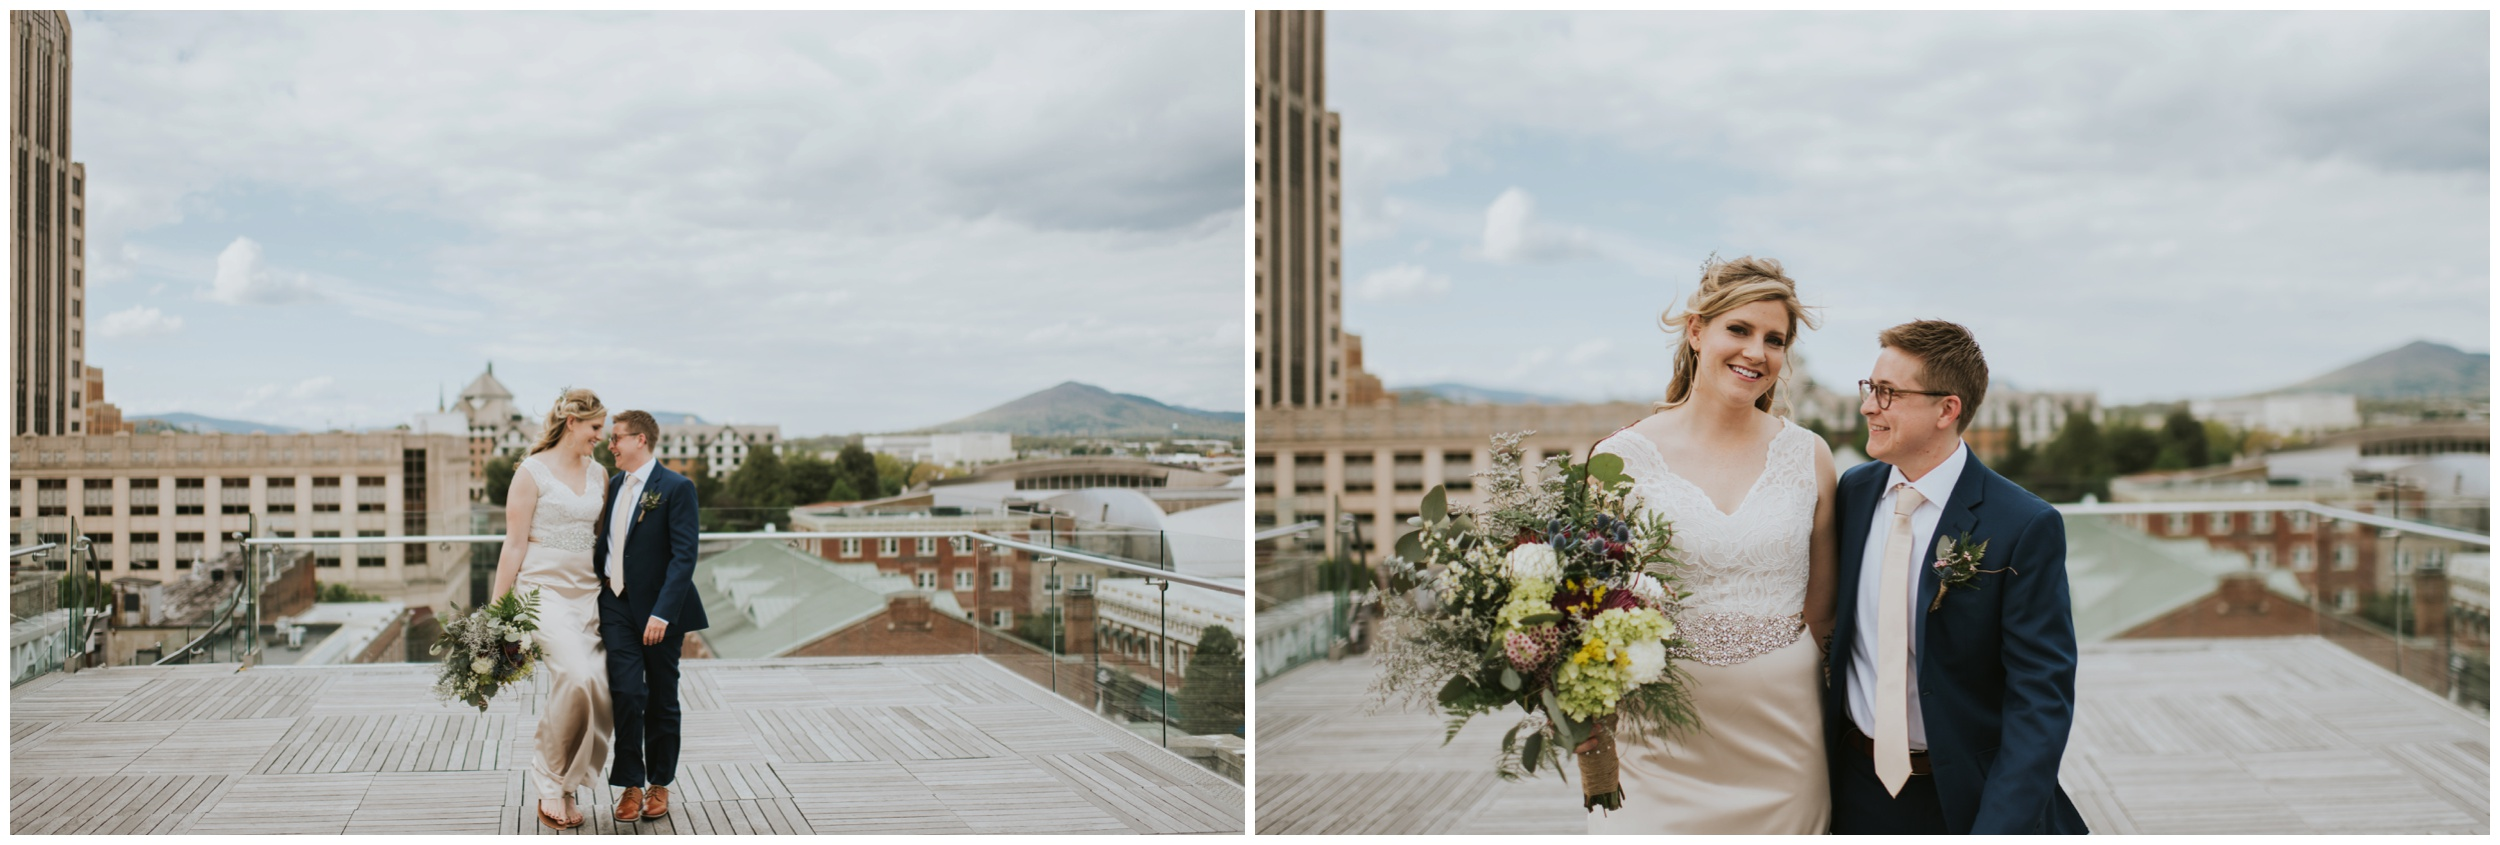 Downtown Roanoke Wedding  | www.riversandroadsphotography.com